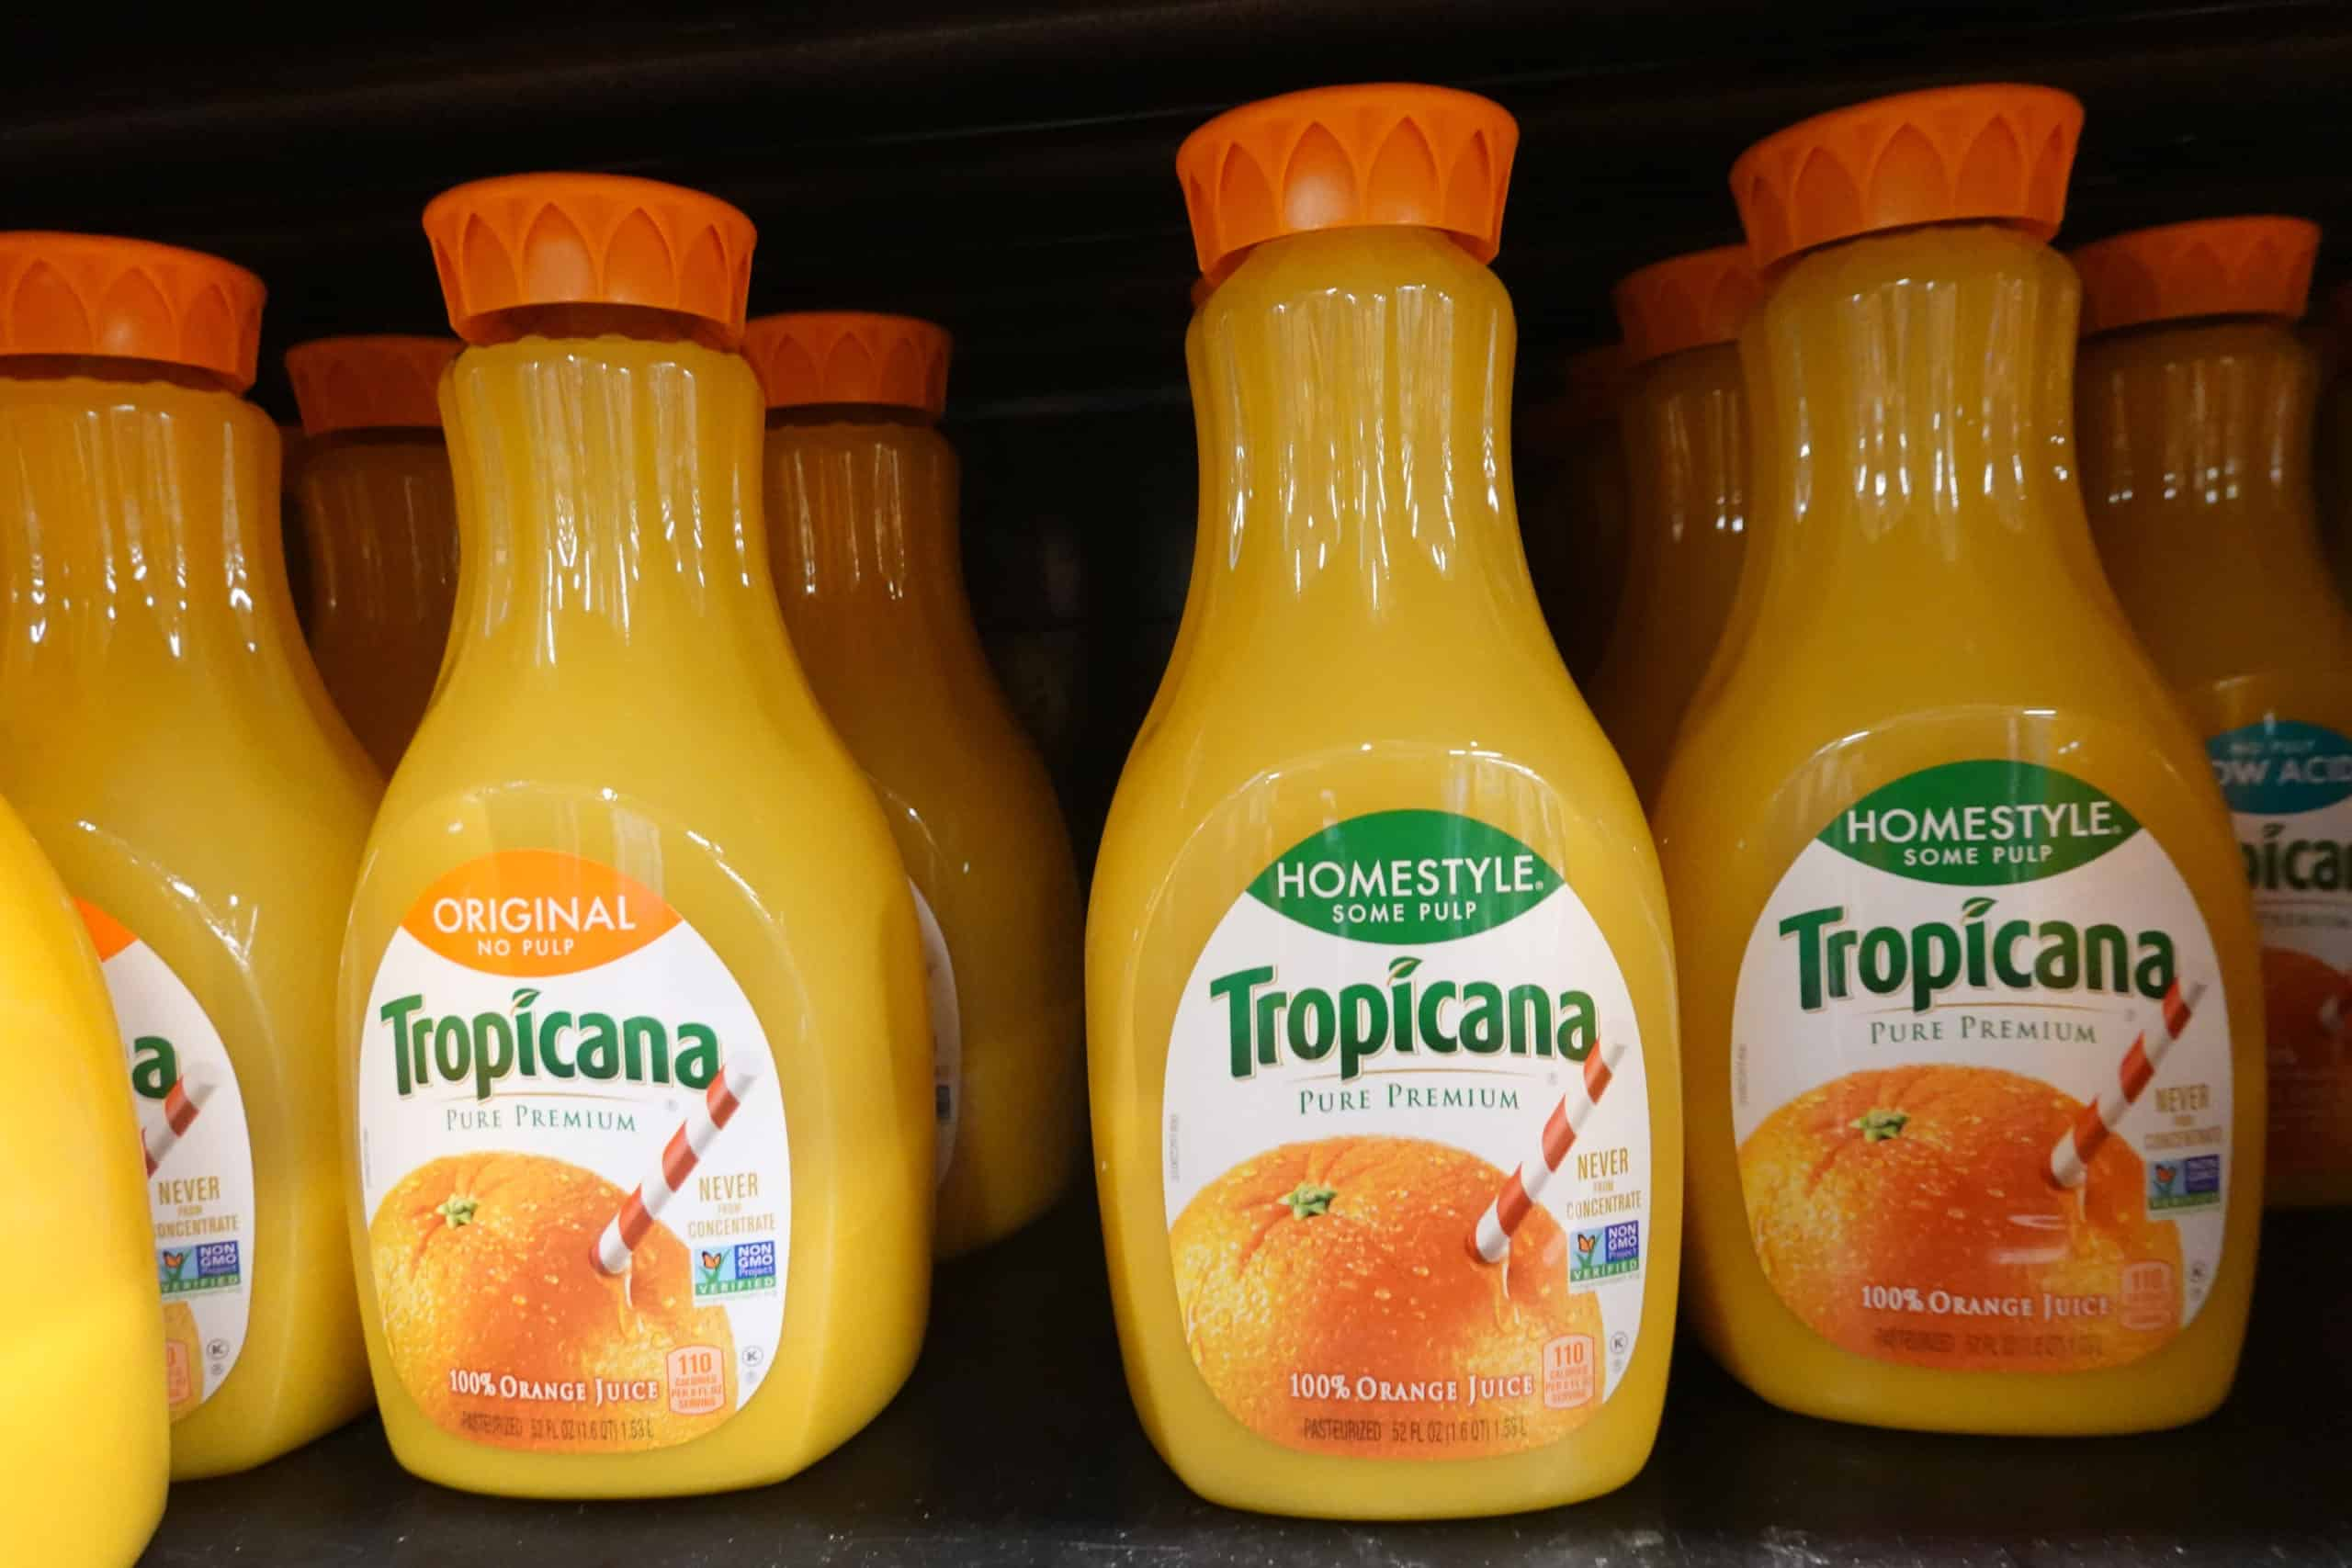 Tropicana Set To Release Limited-Edition Toothpaste That Doesn't Ruin The Taste Of Orange Juice